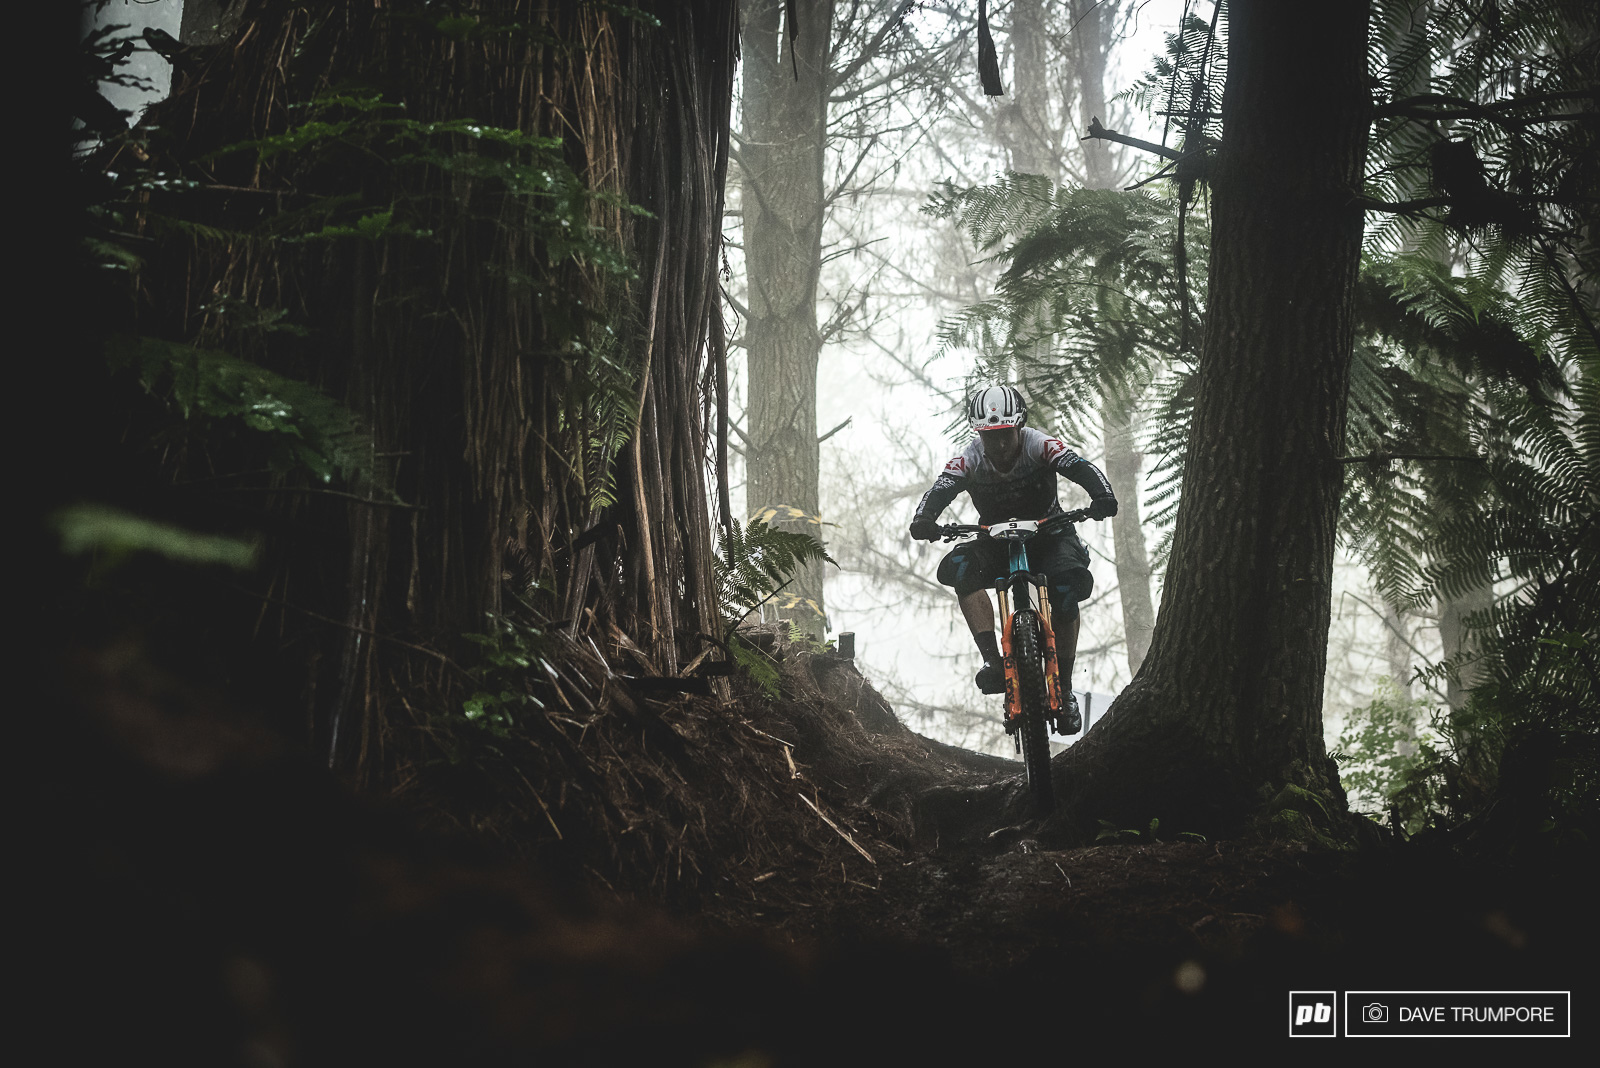 Jesse Melamed drops into the slippery woods on stage 1.